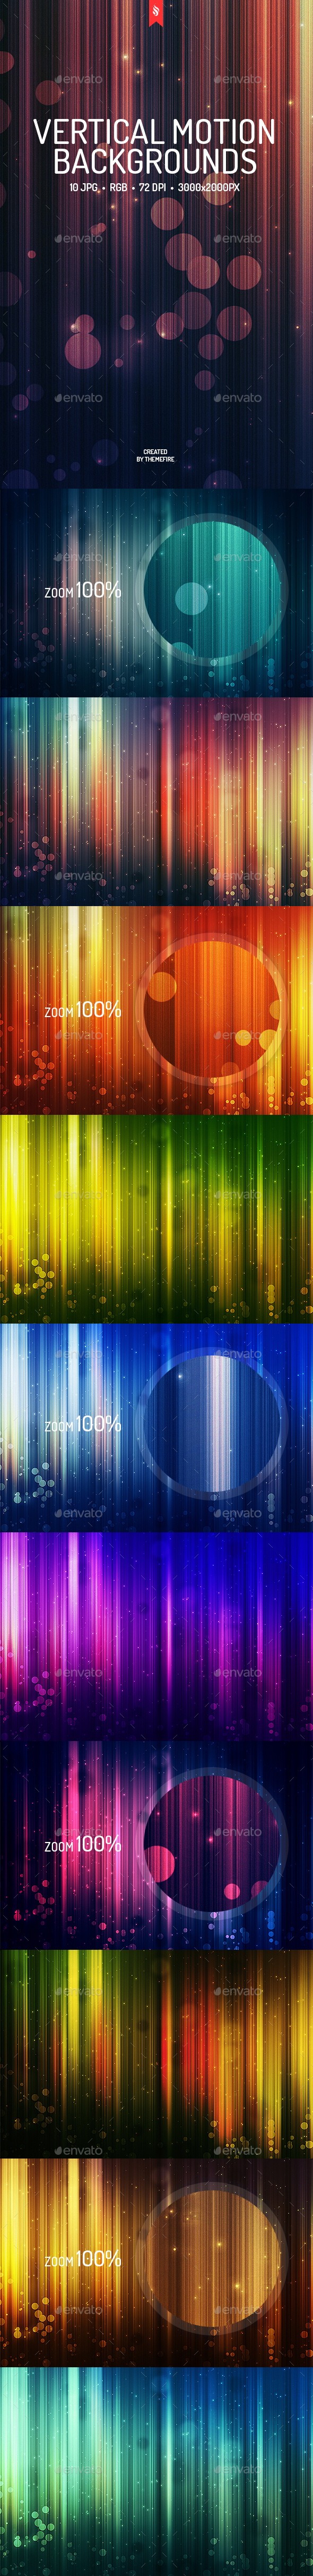 Vertical Motion Backgrounds  #light #desktop #lights • Click here to download ! http://graphicriver.net/item/vertical-motion-backgrounds/15883351?ref=pxcr